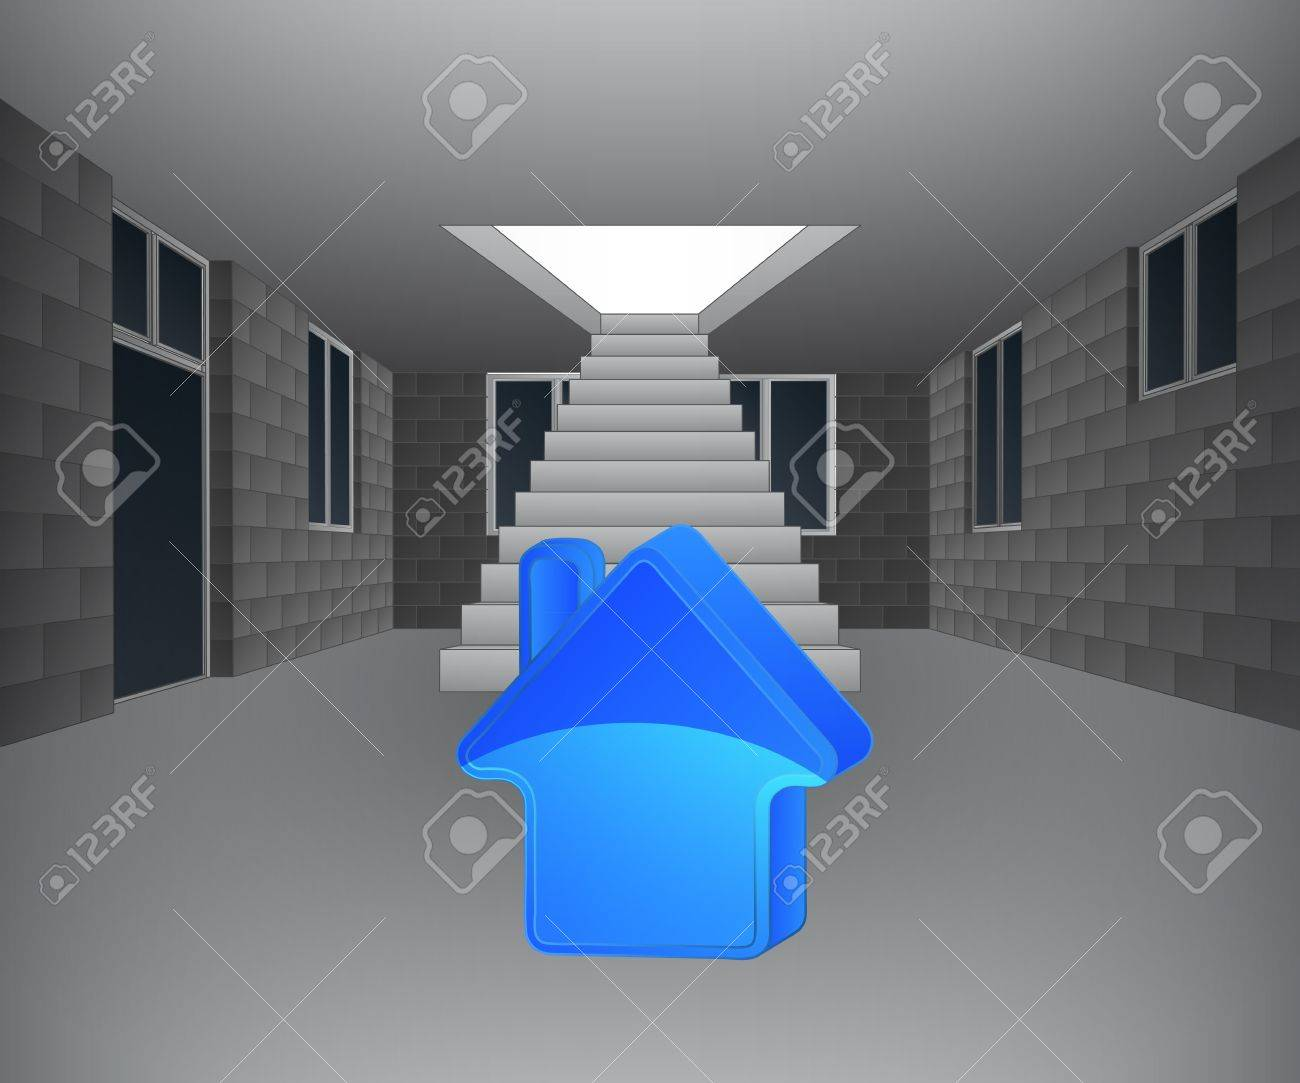 house interior with house icon in front of staircase illustration Stock Vector - 21659677